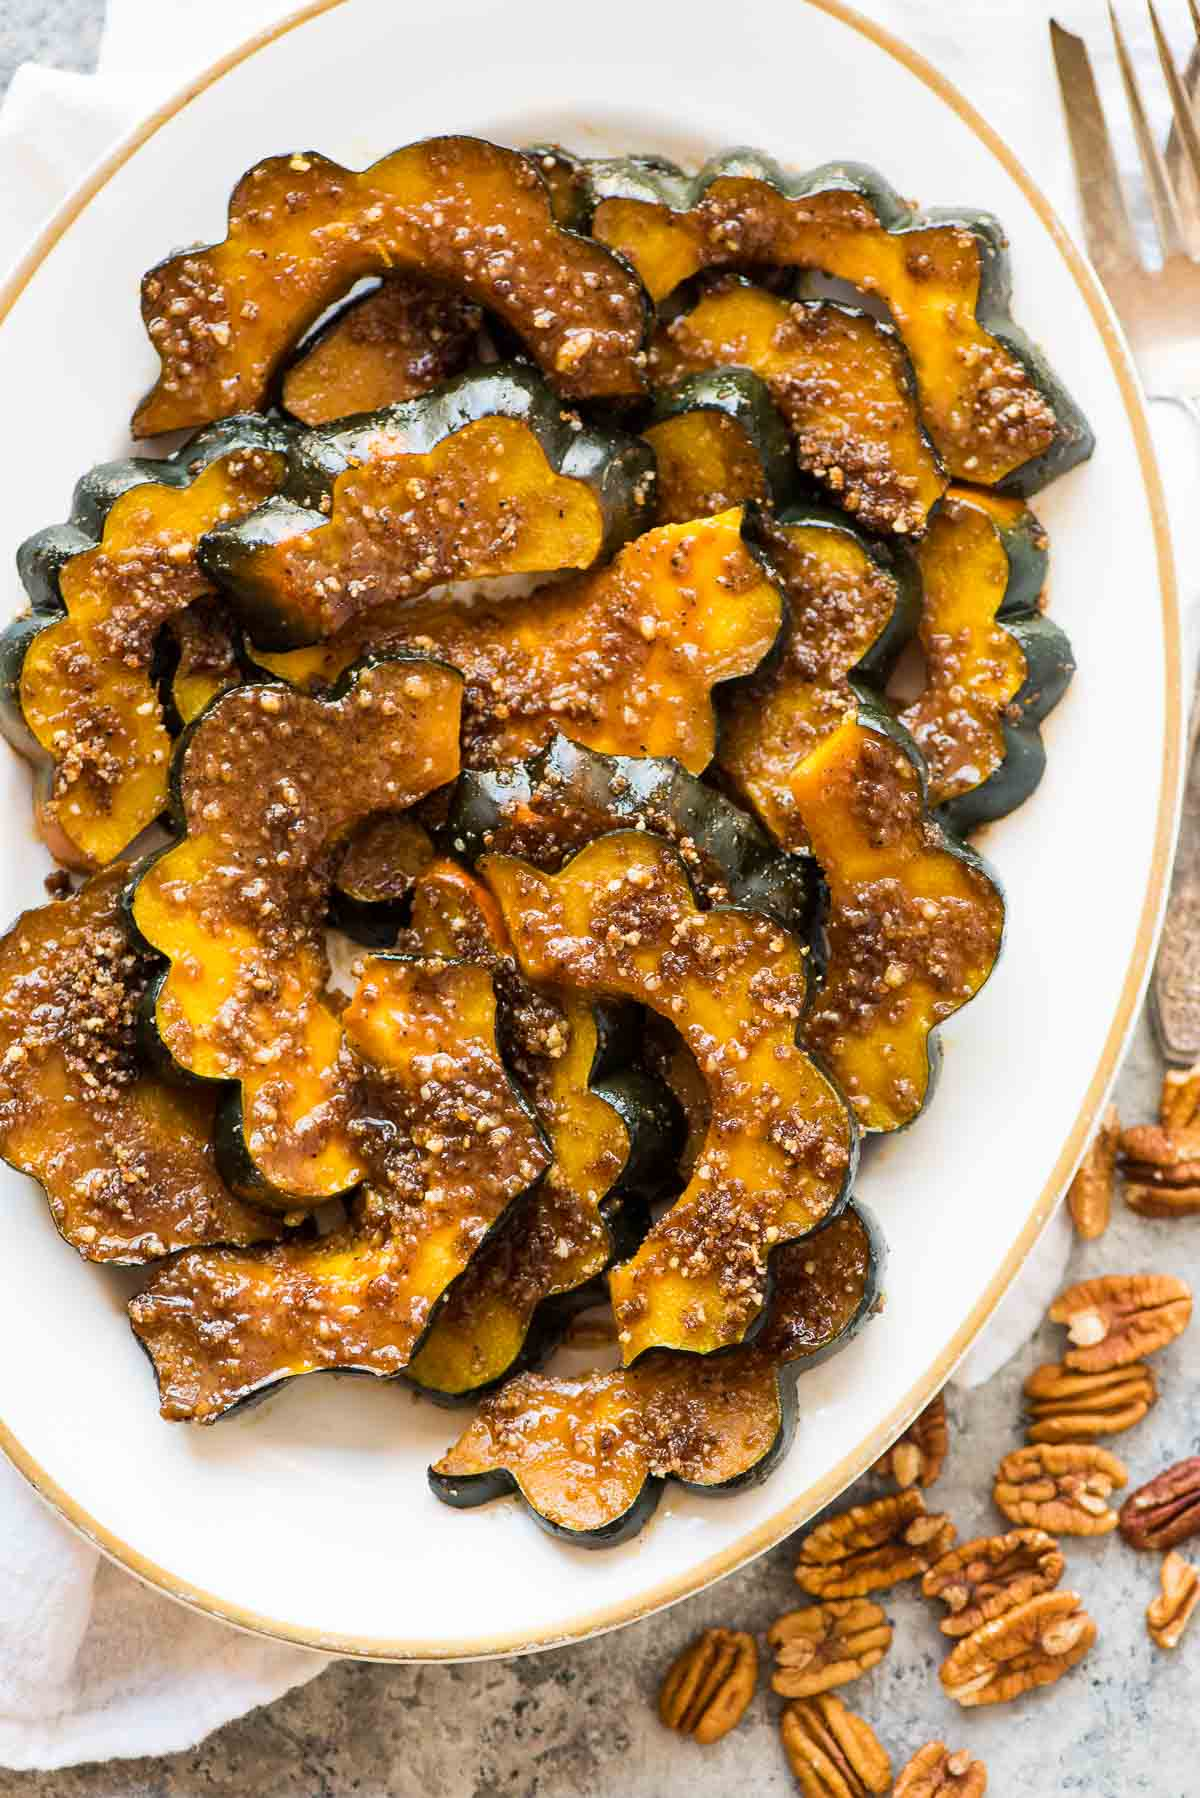 Baked Acorn Squash Slices with Brown Sugar and Pecans. A few simple ingredients and 30 minutes are all you need to make this delicious recipe! Perfect holiday recipe or anytime you need an easy side. Recipe at wellplated.com | @wellplated